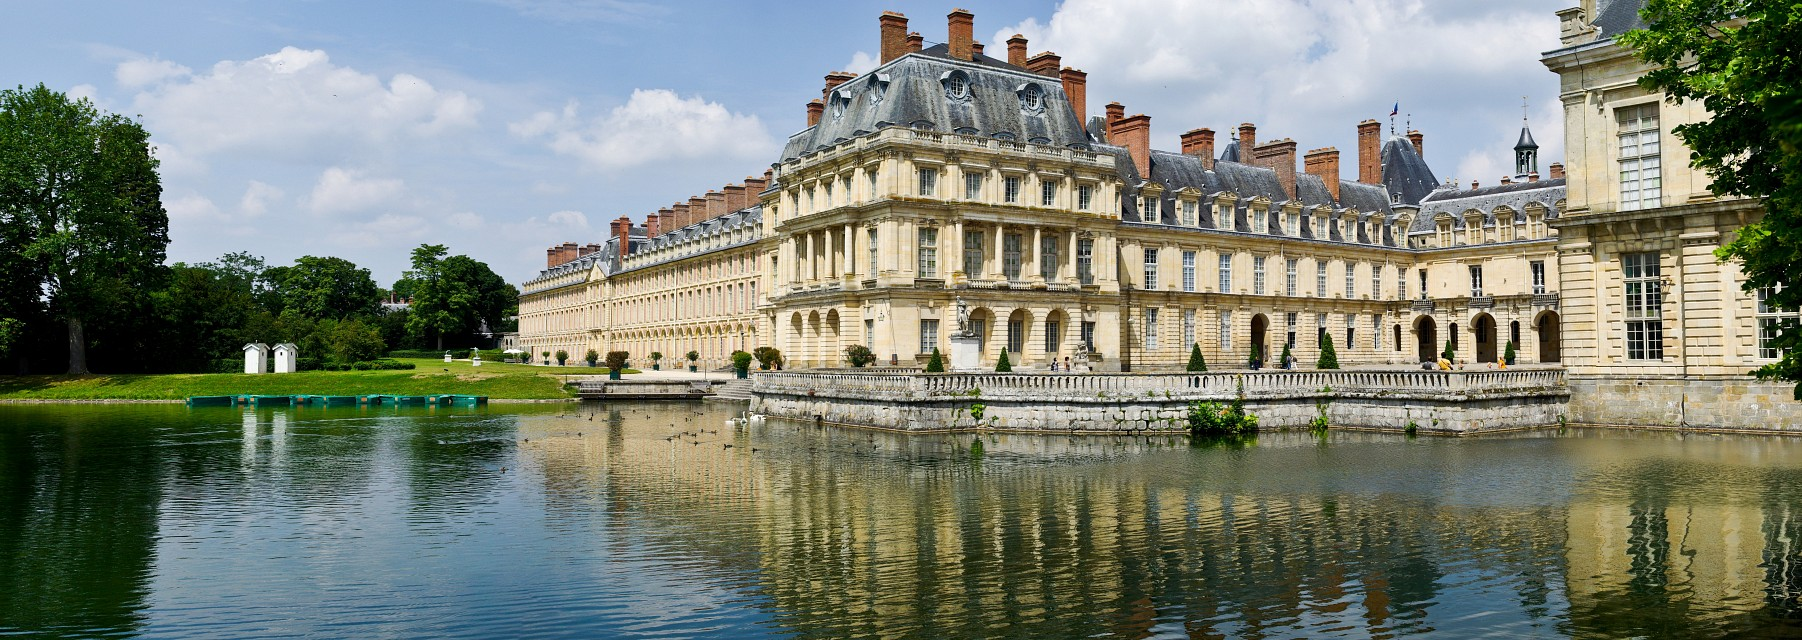 palace of fontainebleau castle in france thousand wonders. Black Bedroom Furniture Sets. Home Design Ideas